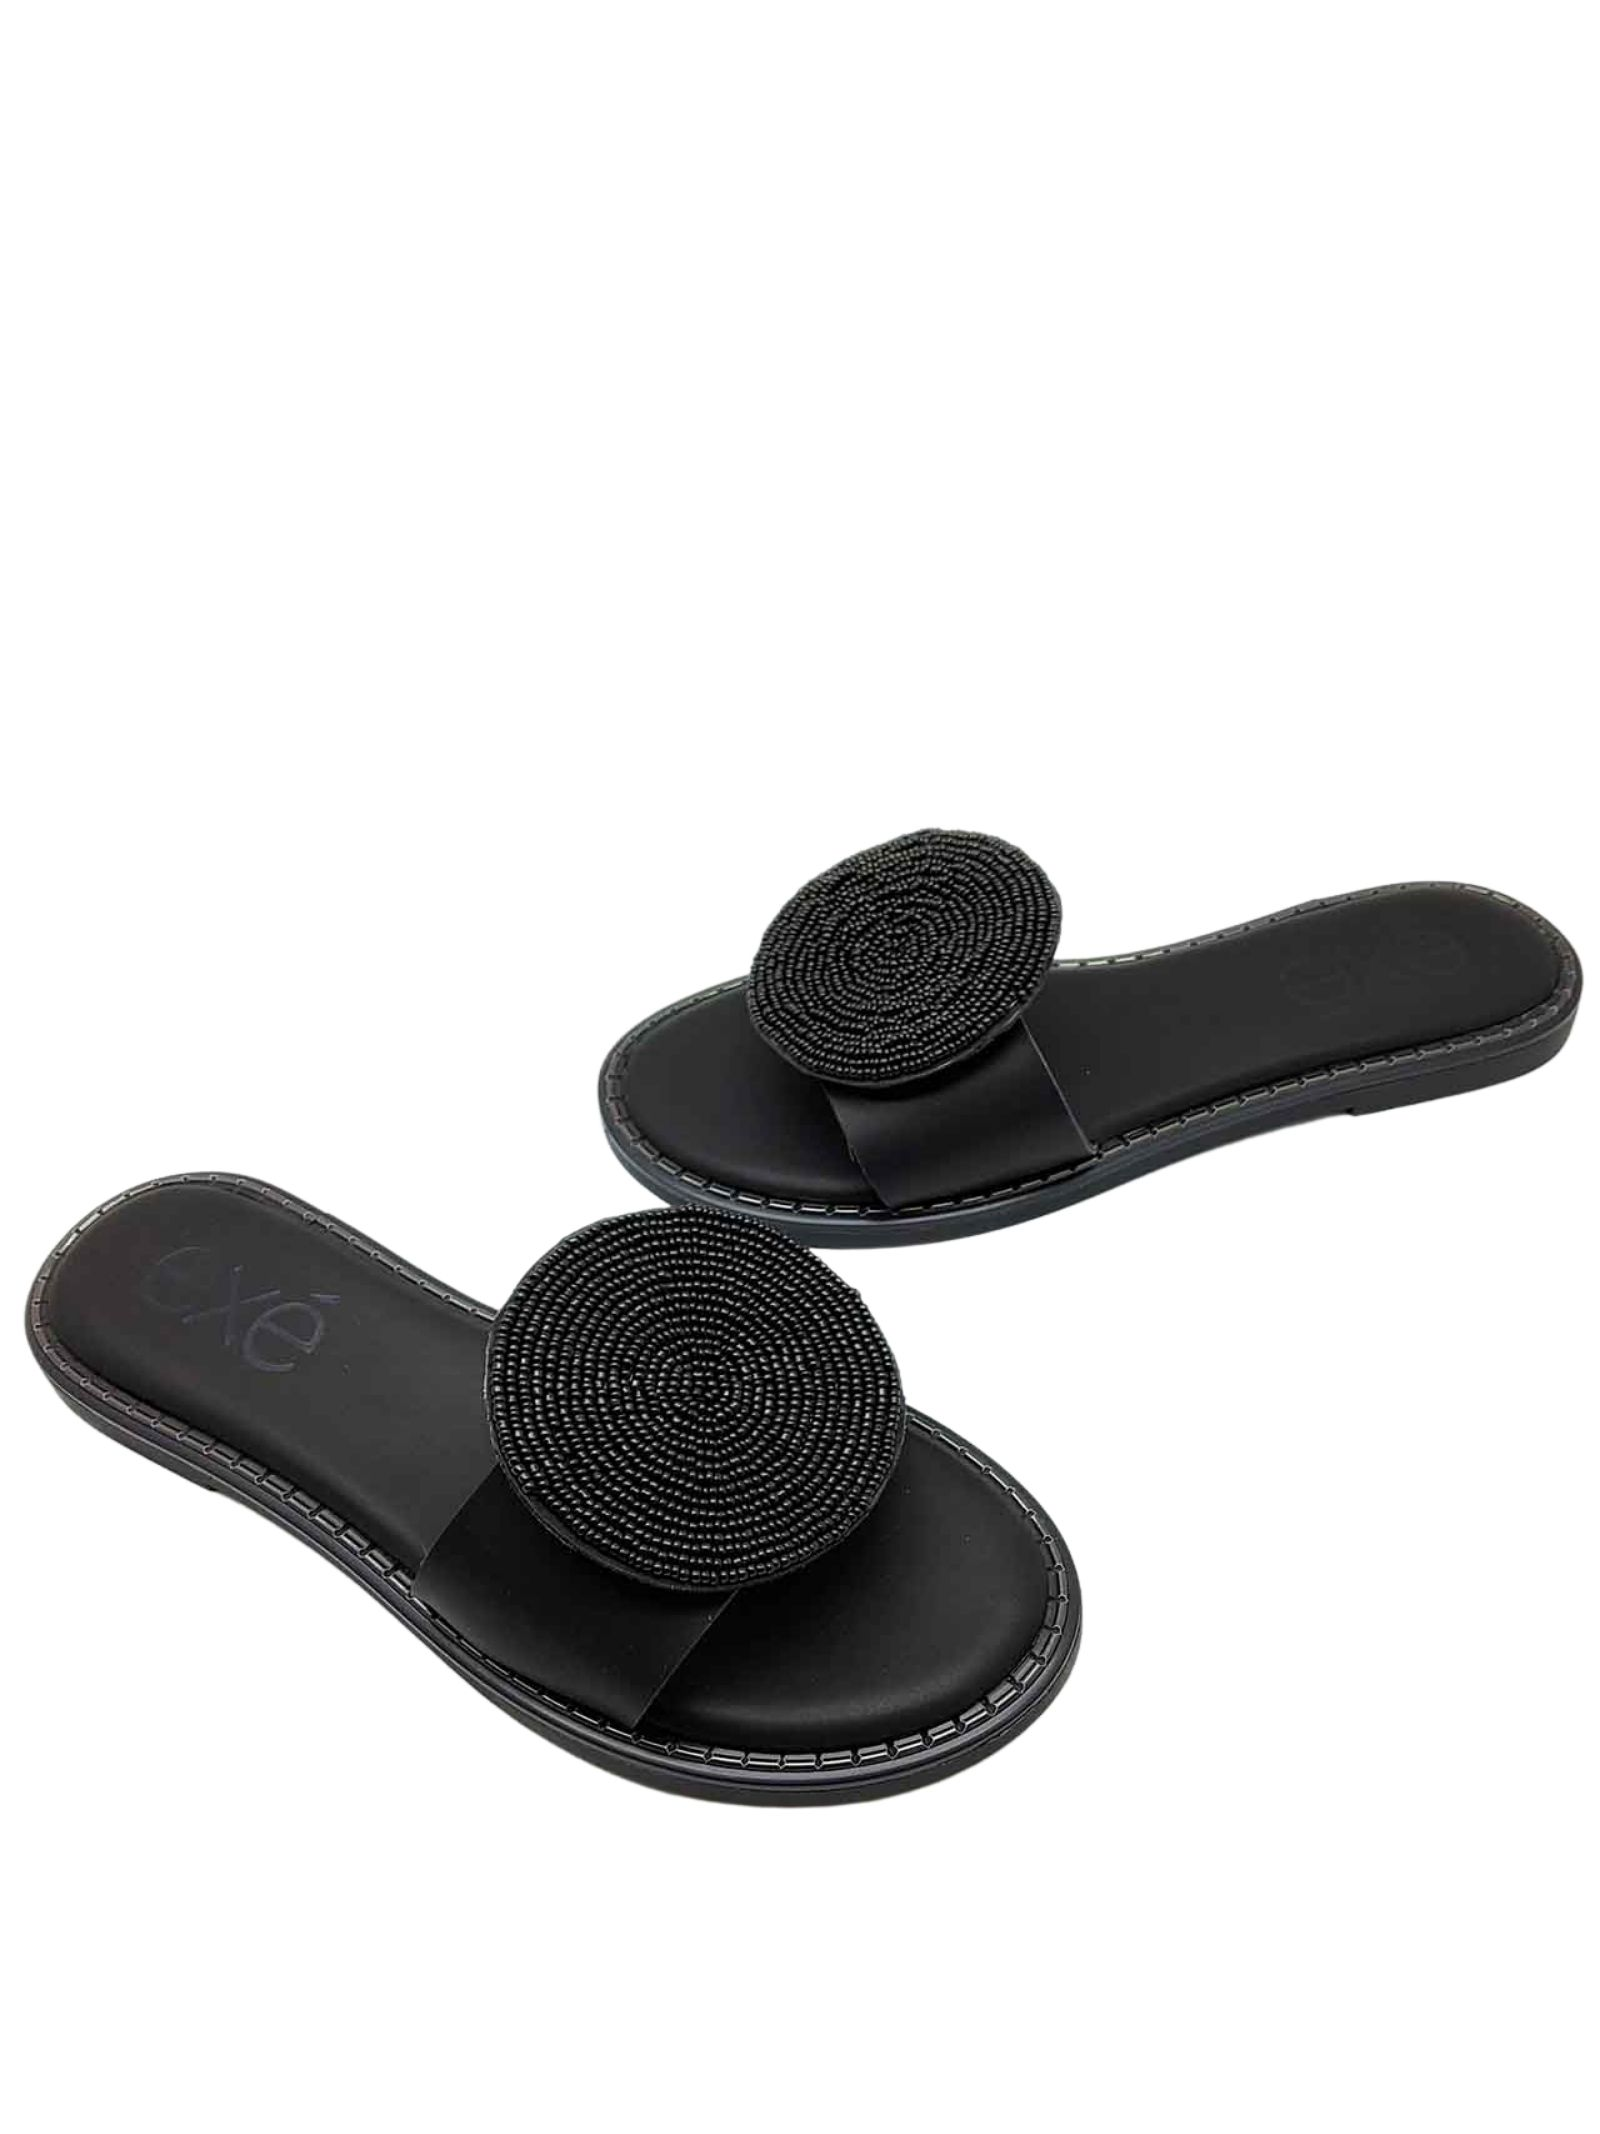 Women's Shoes Flat Sandals in Black Eco Leather with large Accessory of Matching Beads Exe   Flat sandals   353001